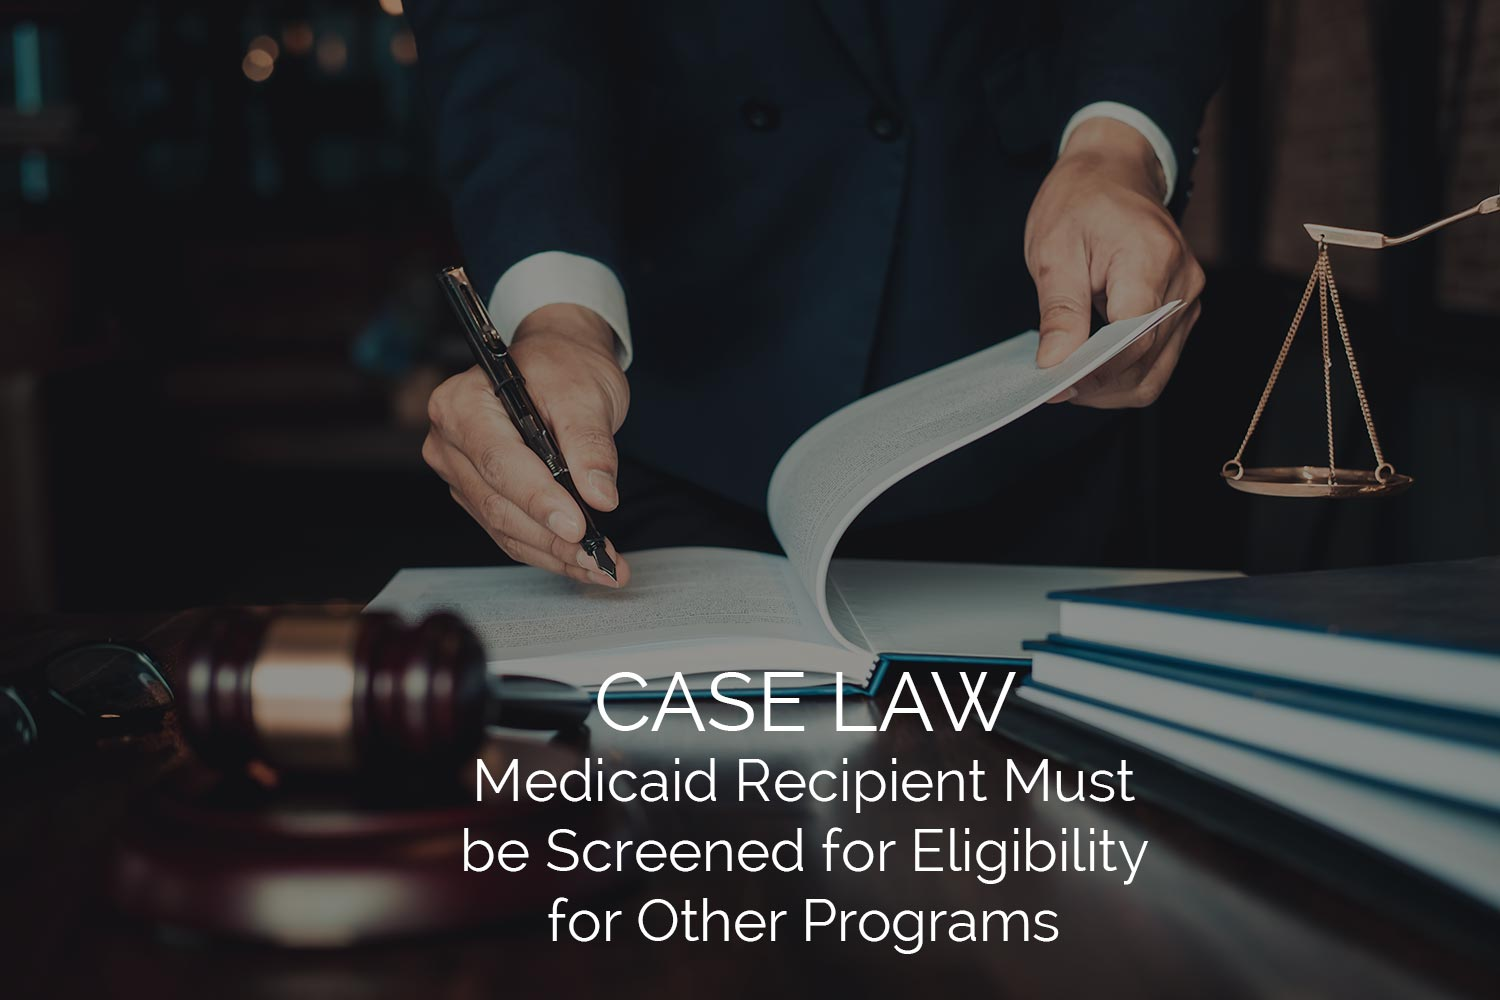 Medicaid Recipient Must be Screened for Eligibility for Other Programs